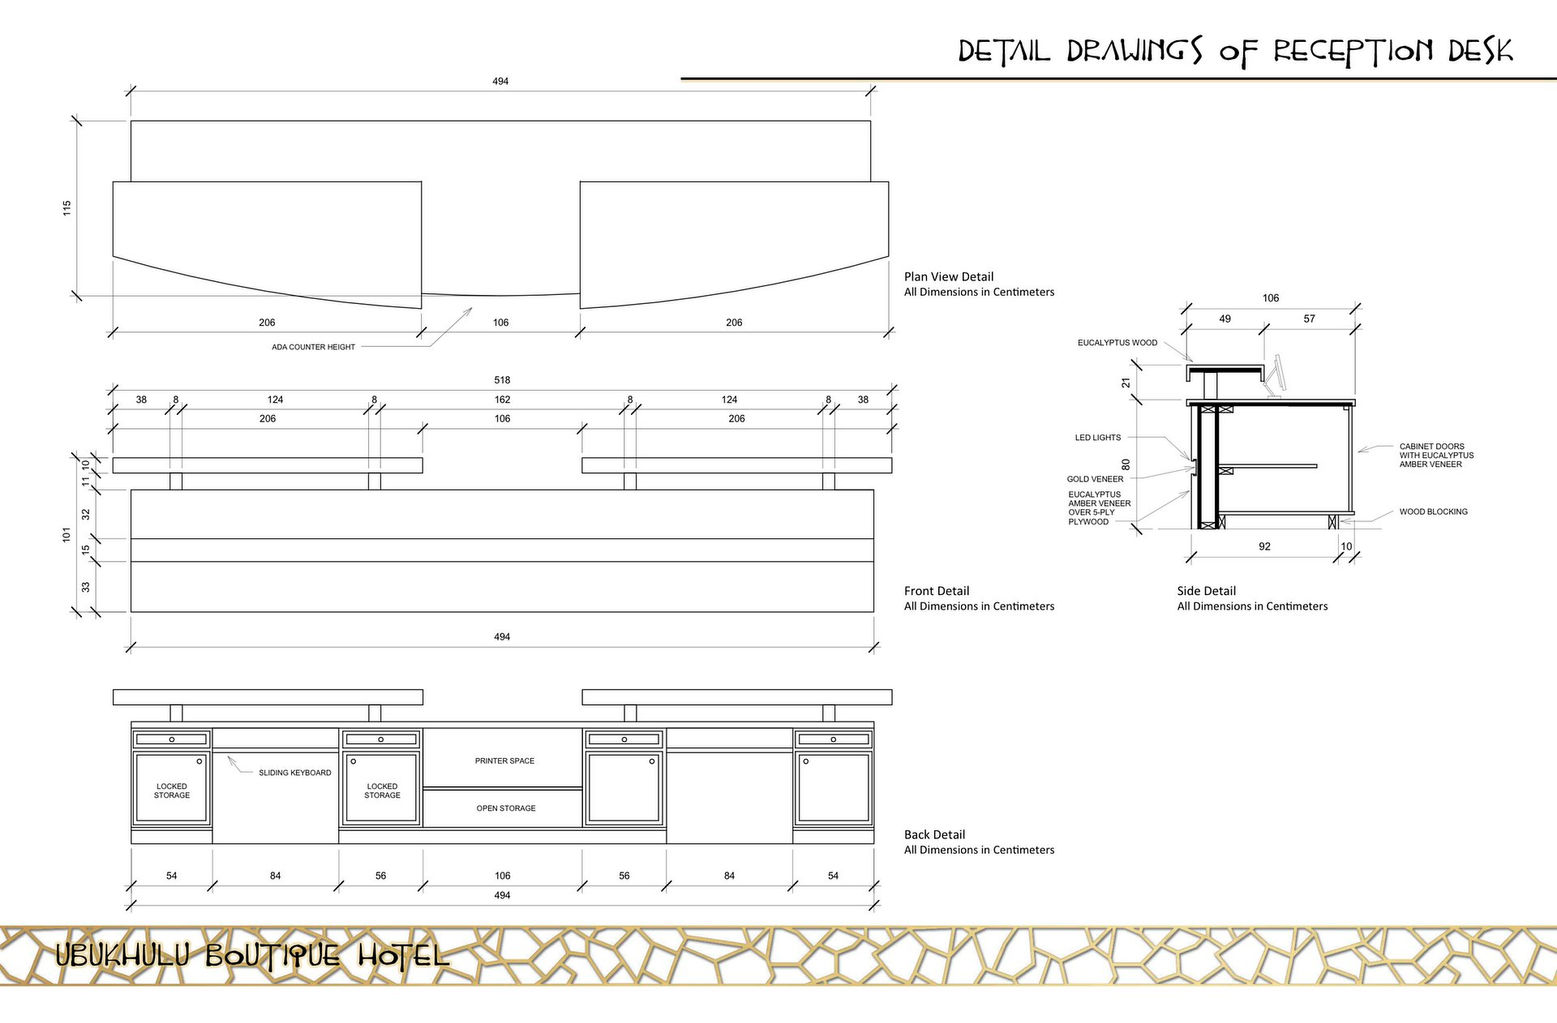 Reception Desk Section Detail Drawing Detail Drawings of Reception